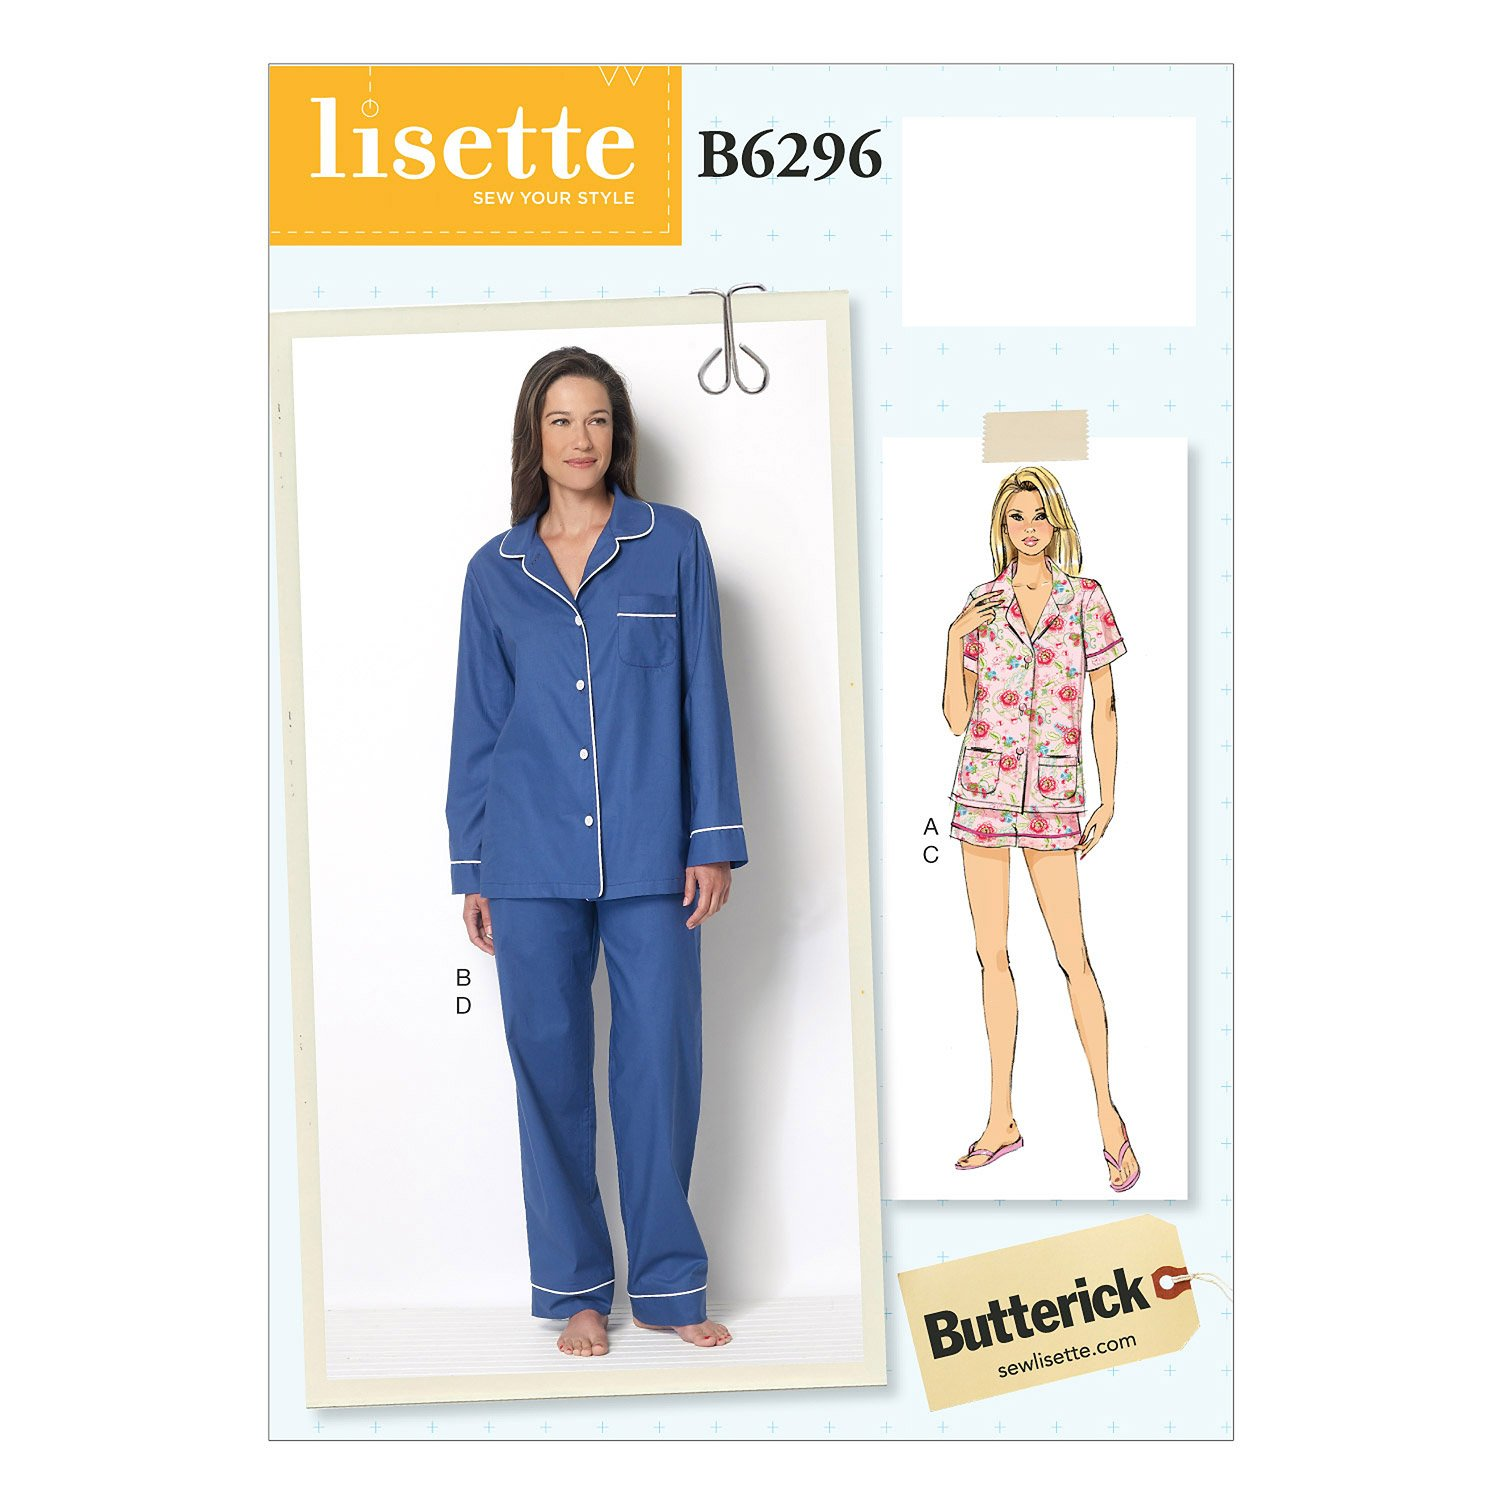 Butterick Pattern 6296 A5 Sizes 6-14 Misses Top/Shorts and Pants Sewing Pattern, Multi-Colour The McCall Pattern Company B6296A50